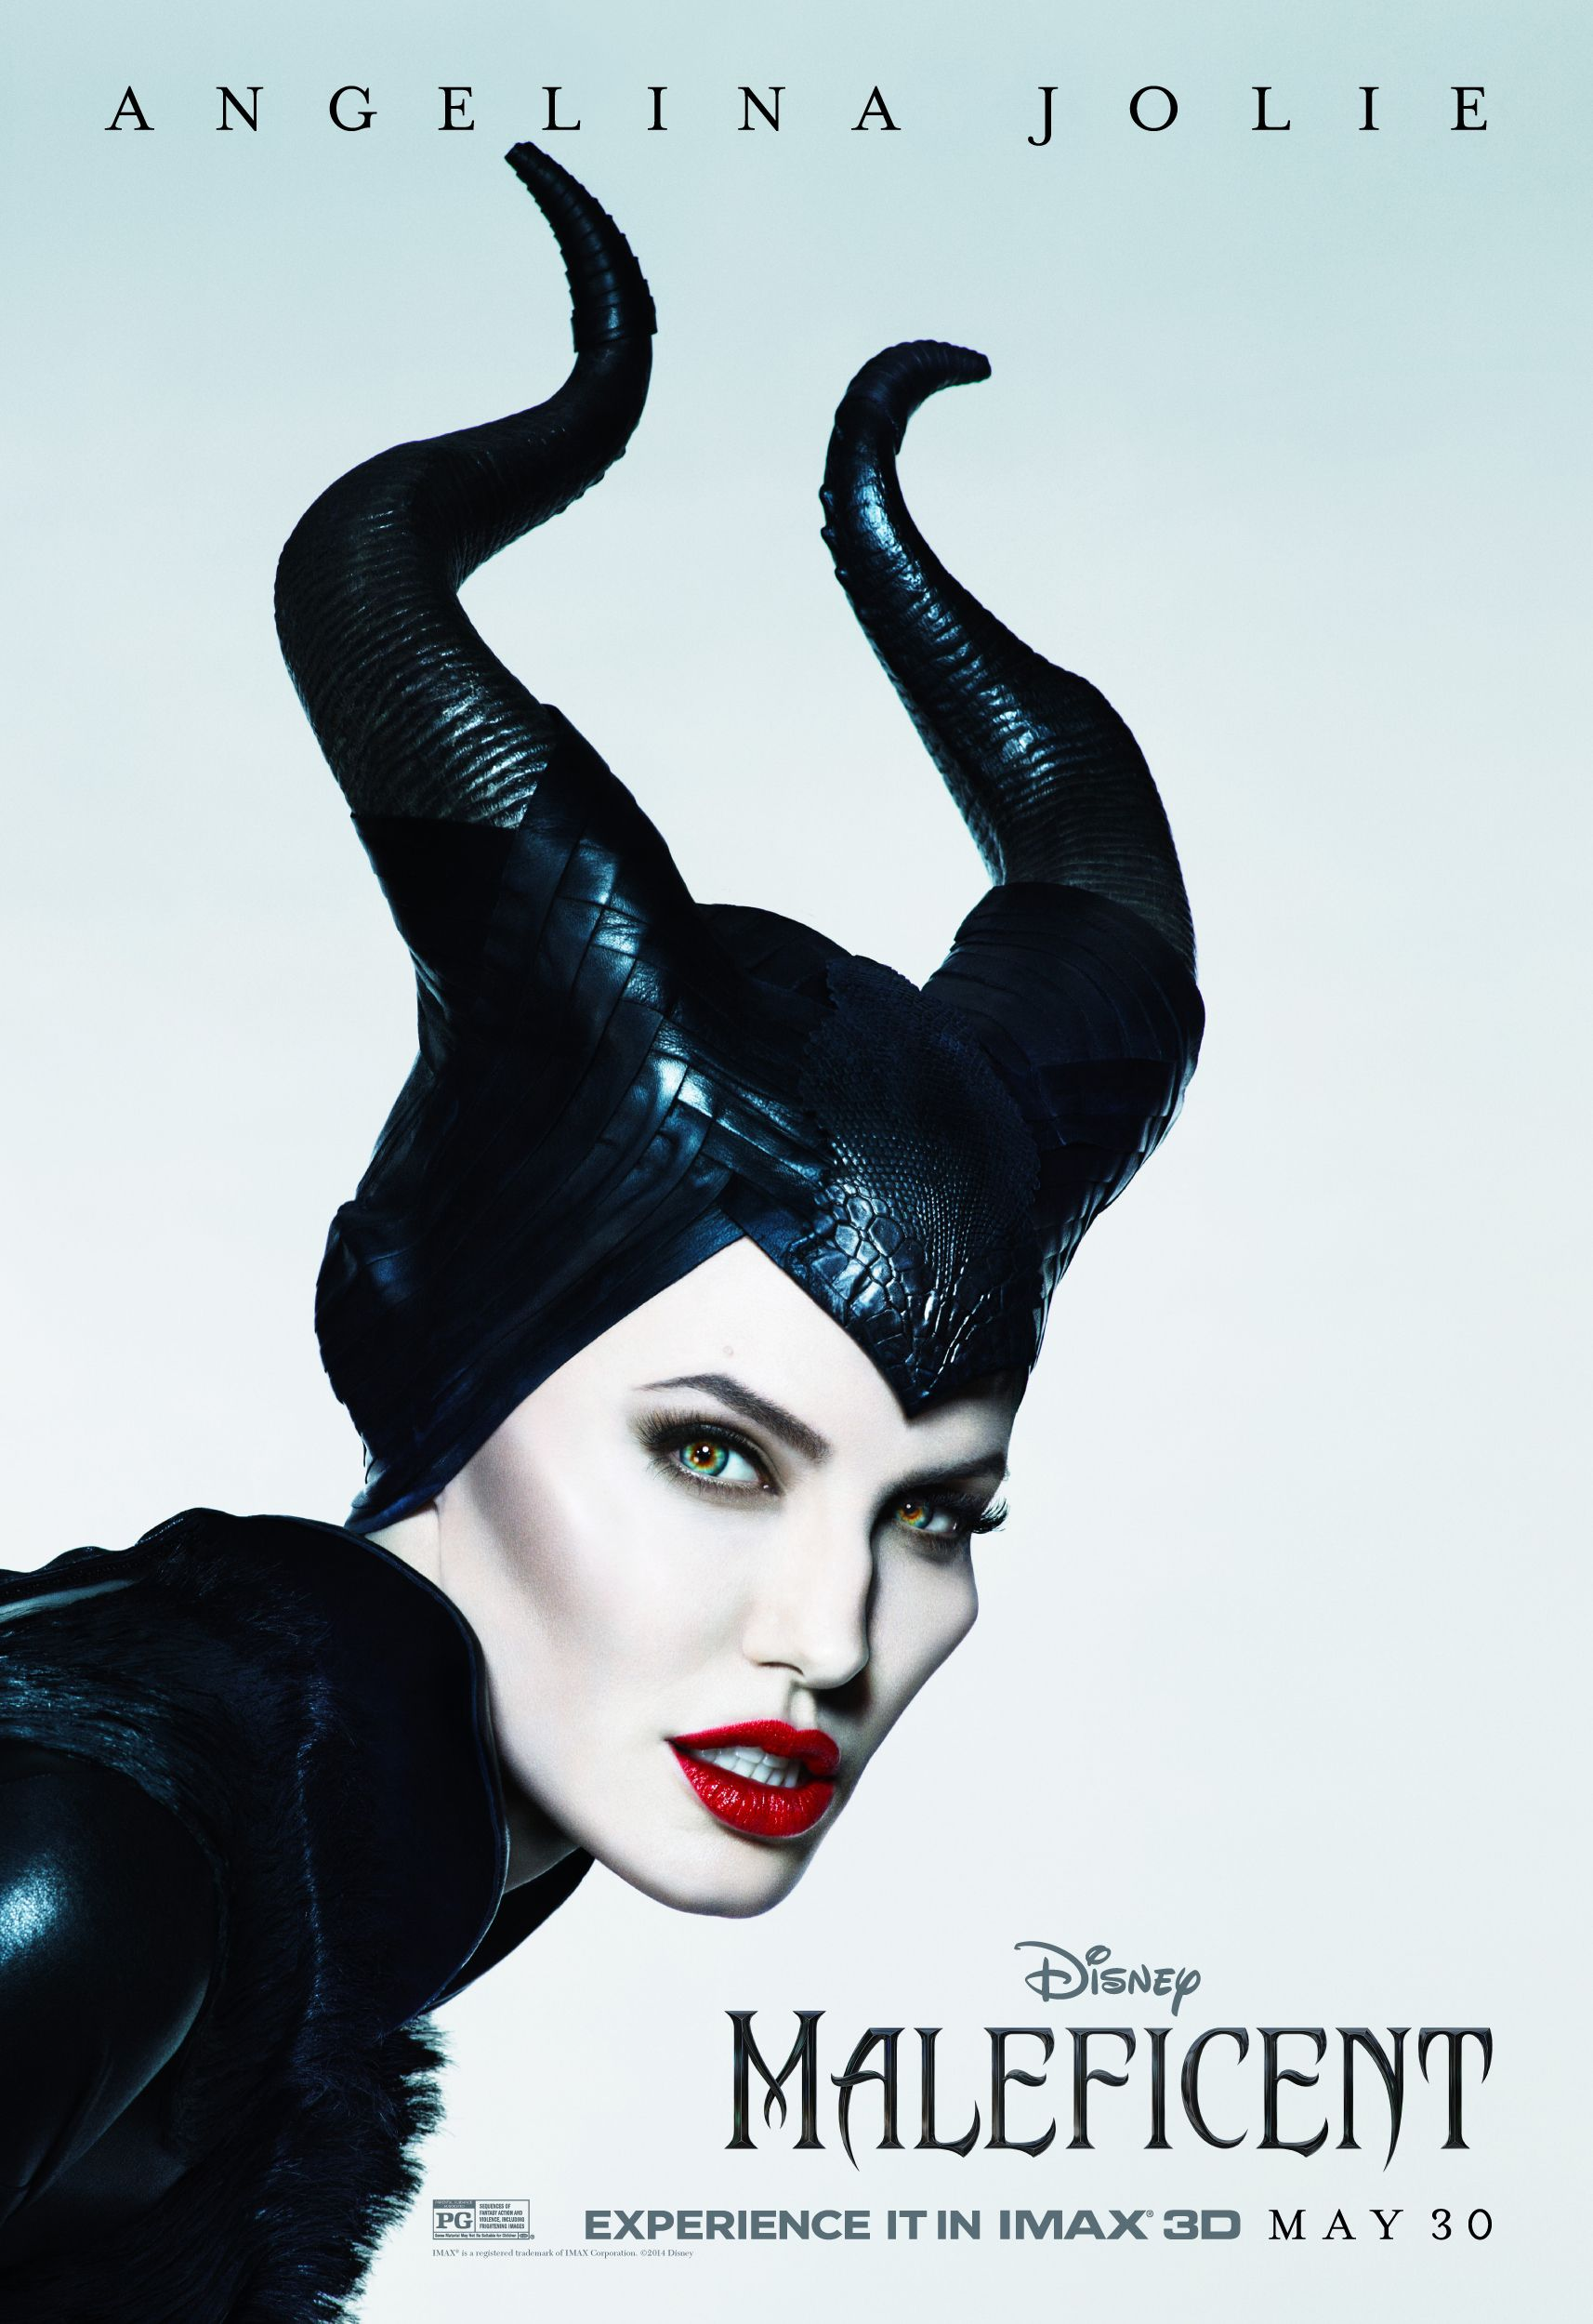 New Disney S Maleficent Trailer Movie Posters